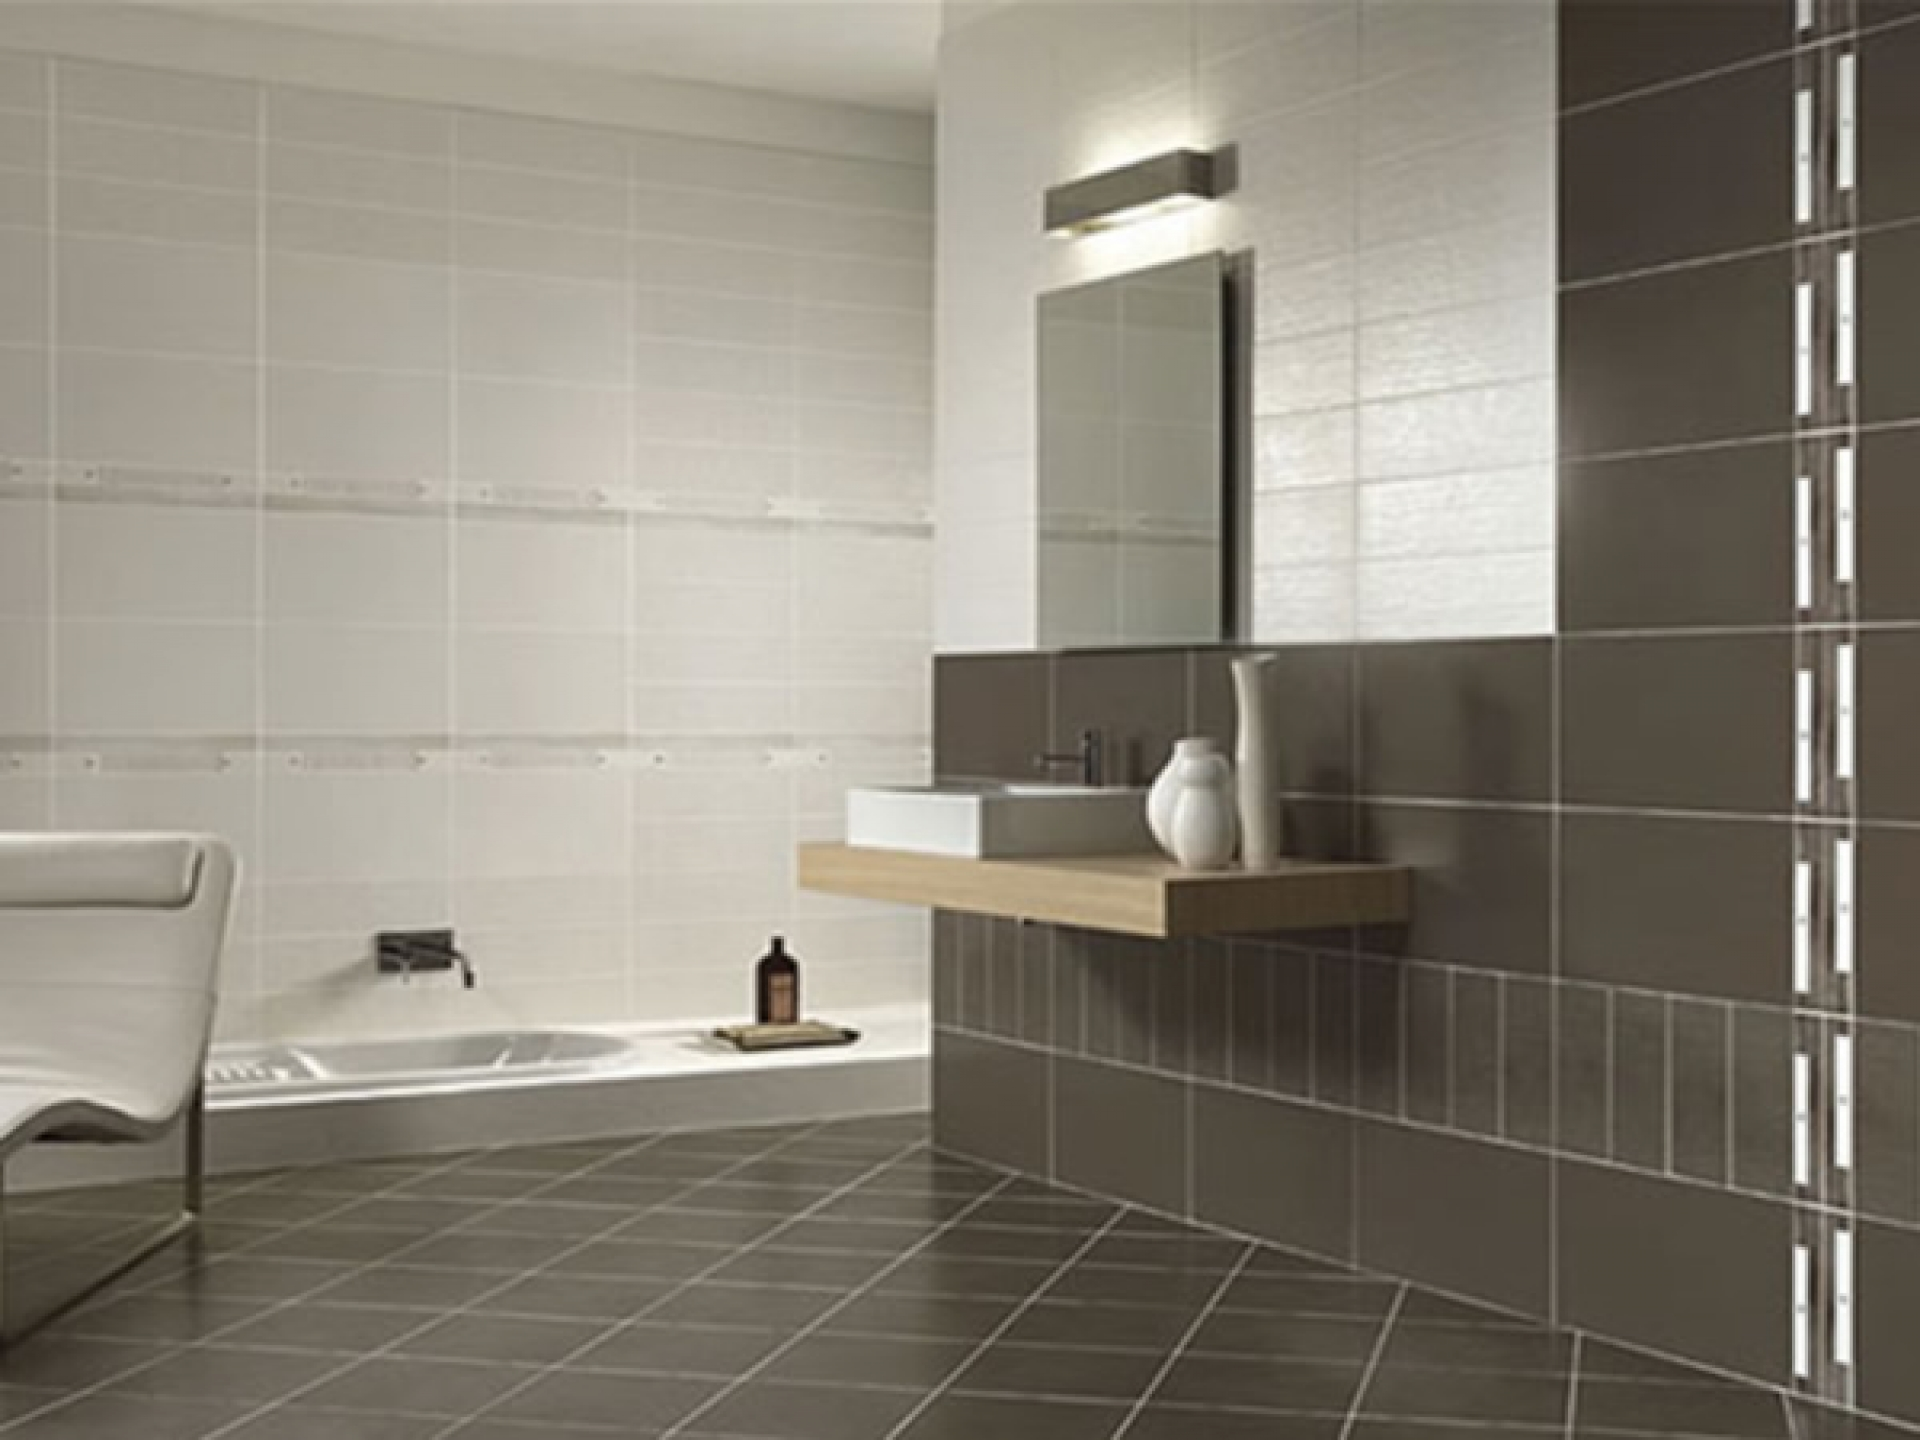 dark-gray-ceramic-bathroom-wall-tile-mirror-without-frame-wooden-hardwood-vanity-mounted-bathtub-beautiful-gallery-showroom-contemporary-decorating-tiled-bathrooms-styles